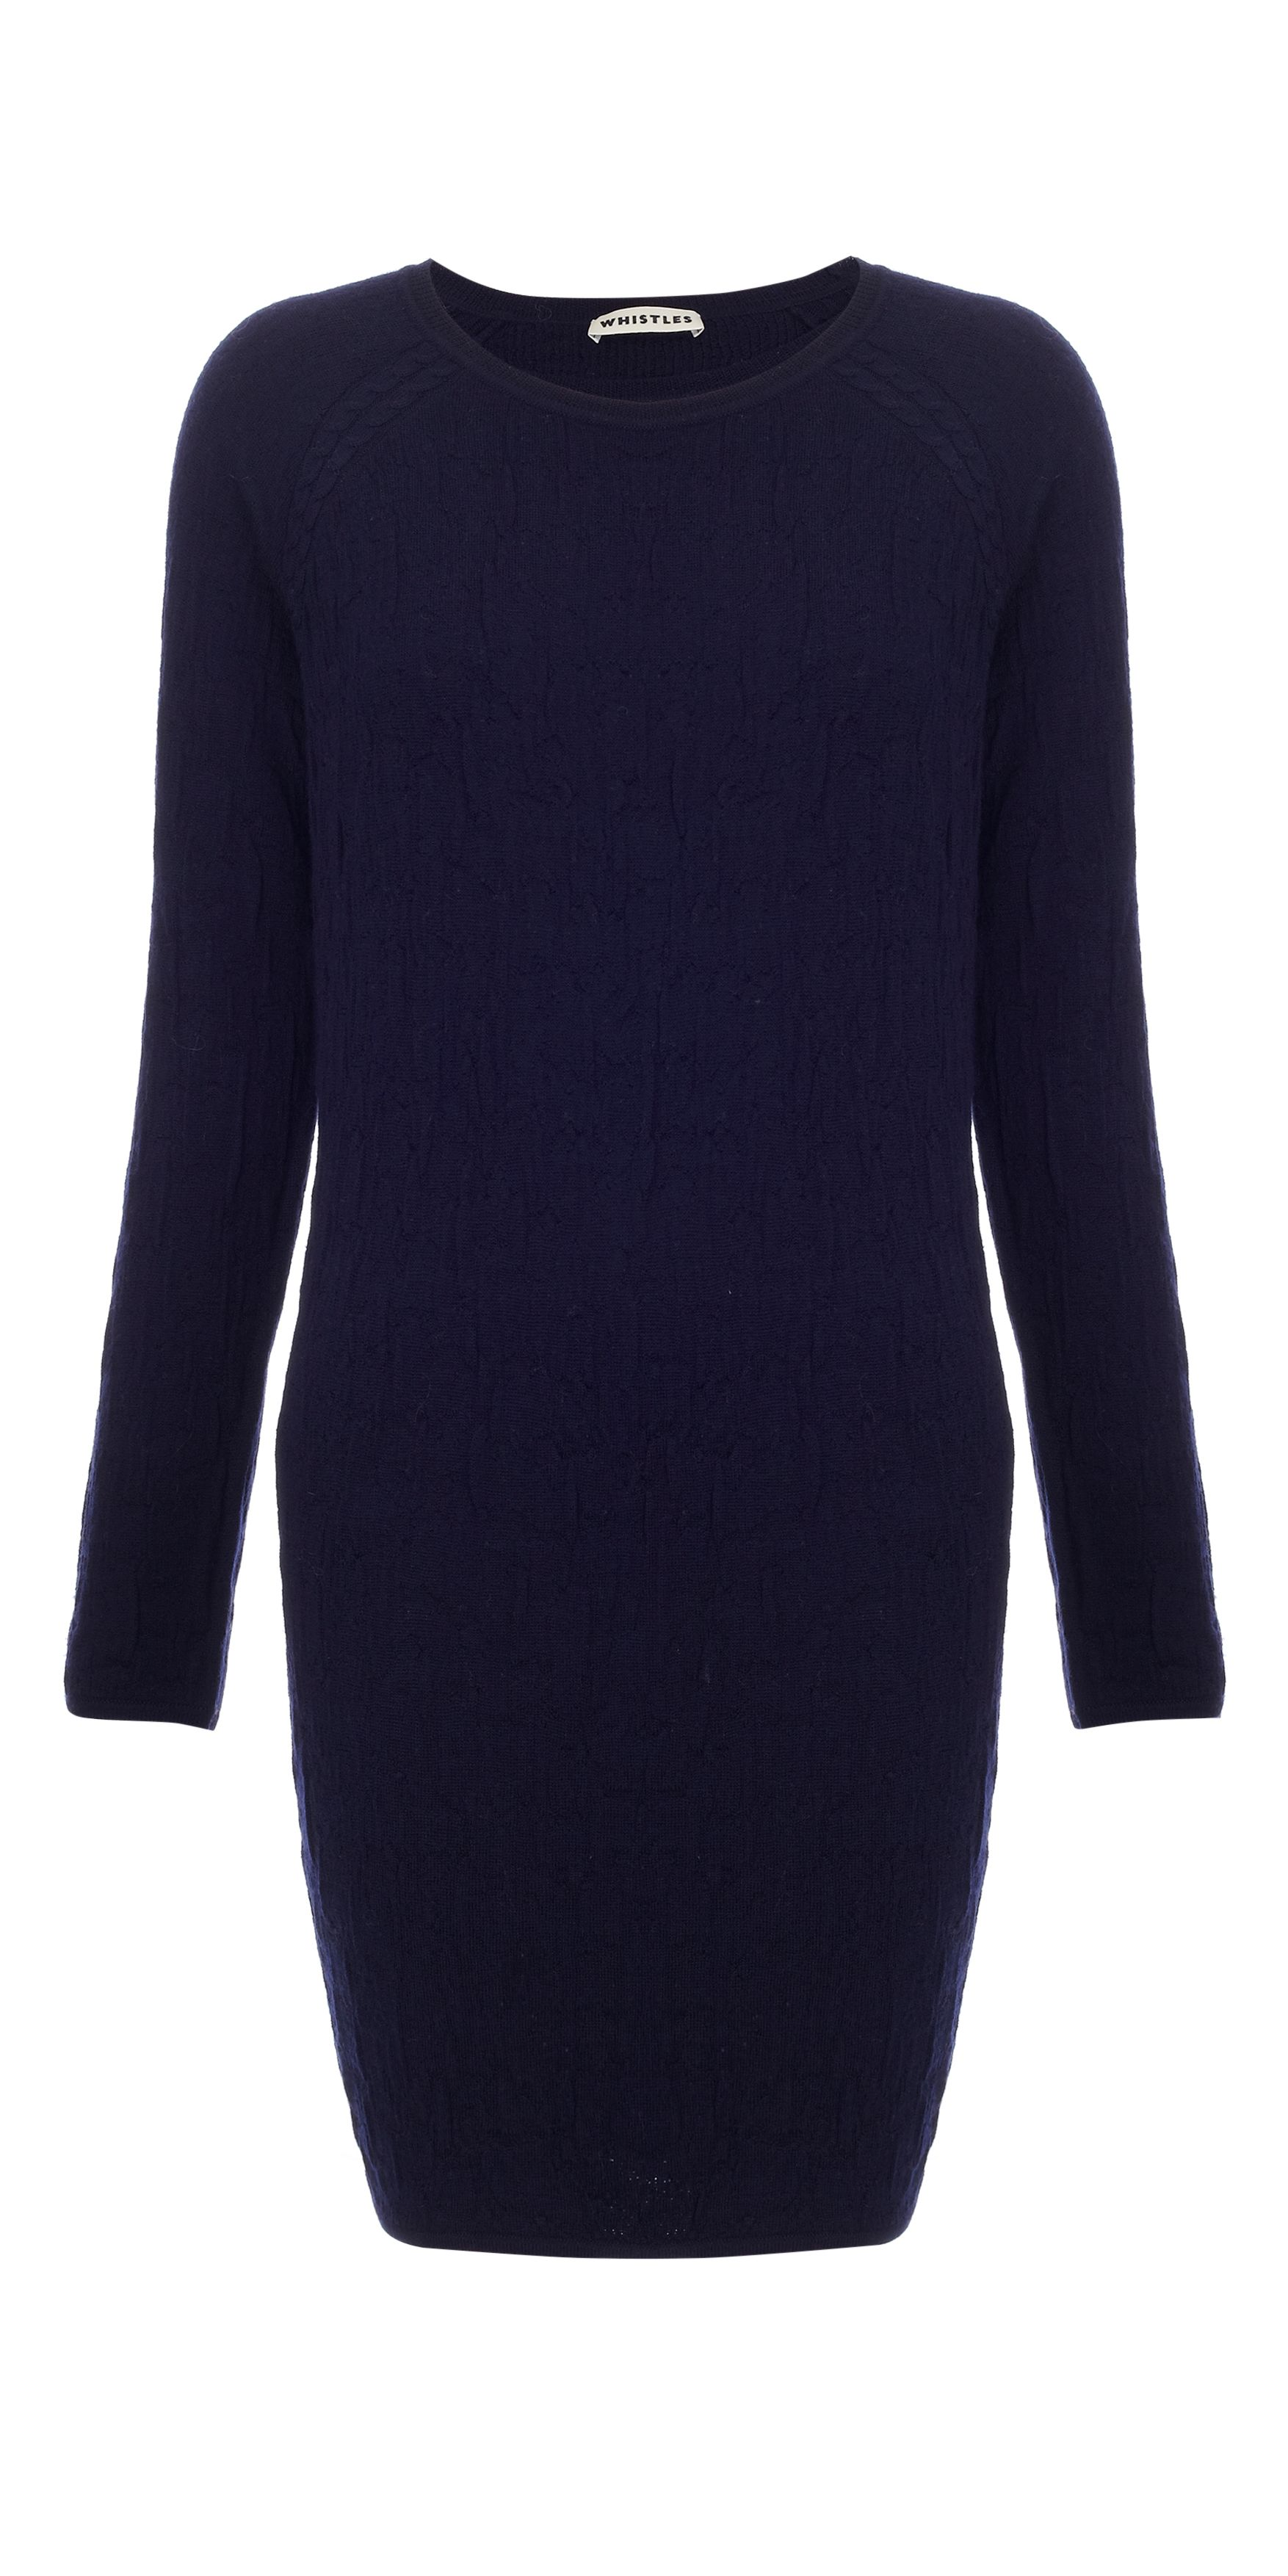 Penelope jacquard knit dress